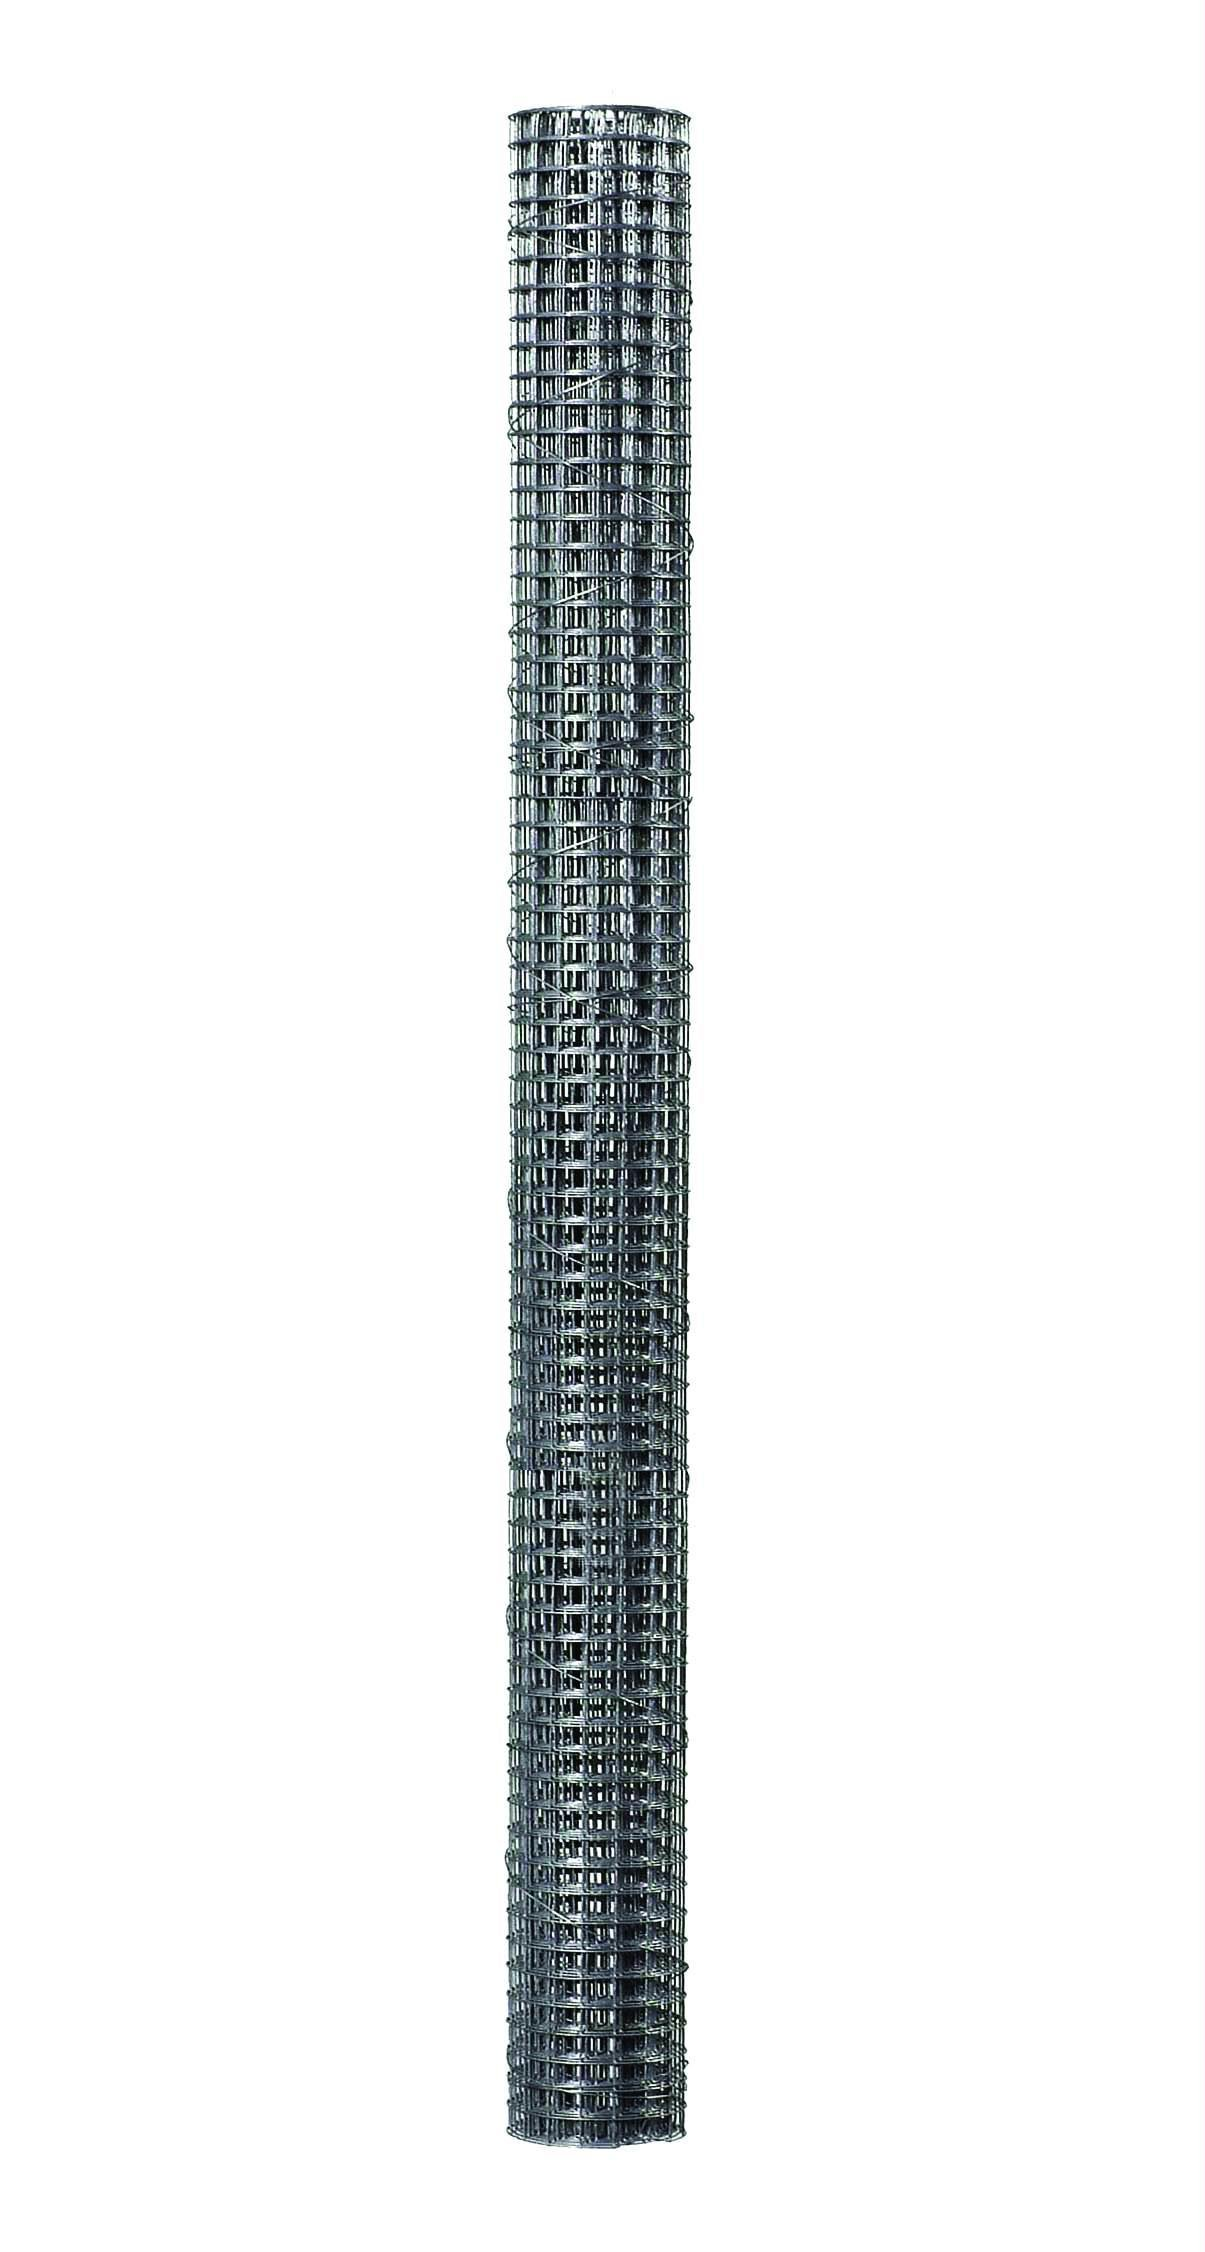 Origin Point 113605 19-Gauge Galvanized Hardware Cloth Fence, 5-Foot x 36-Inch With 1/2-Inch Openings - 100050523